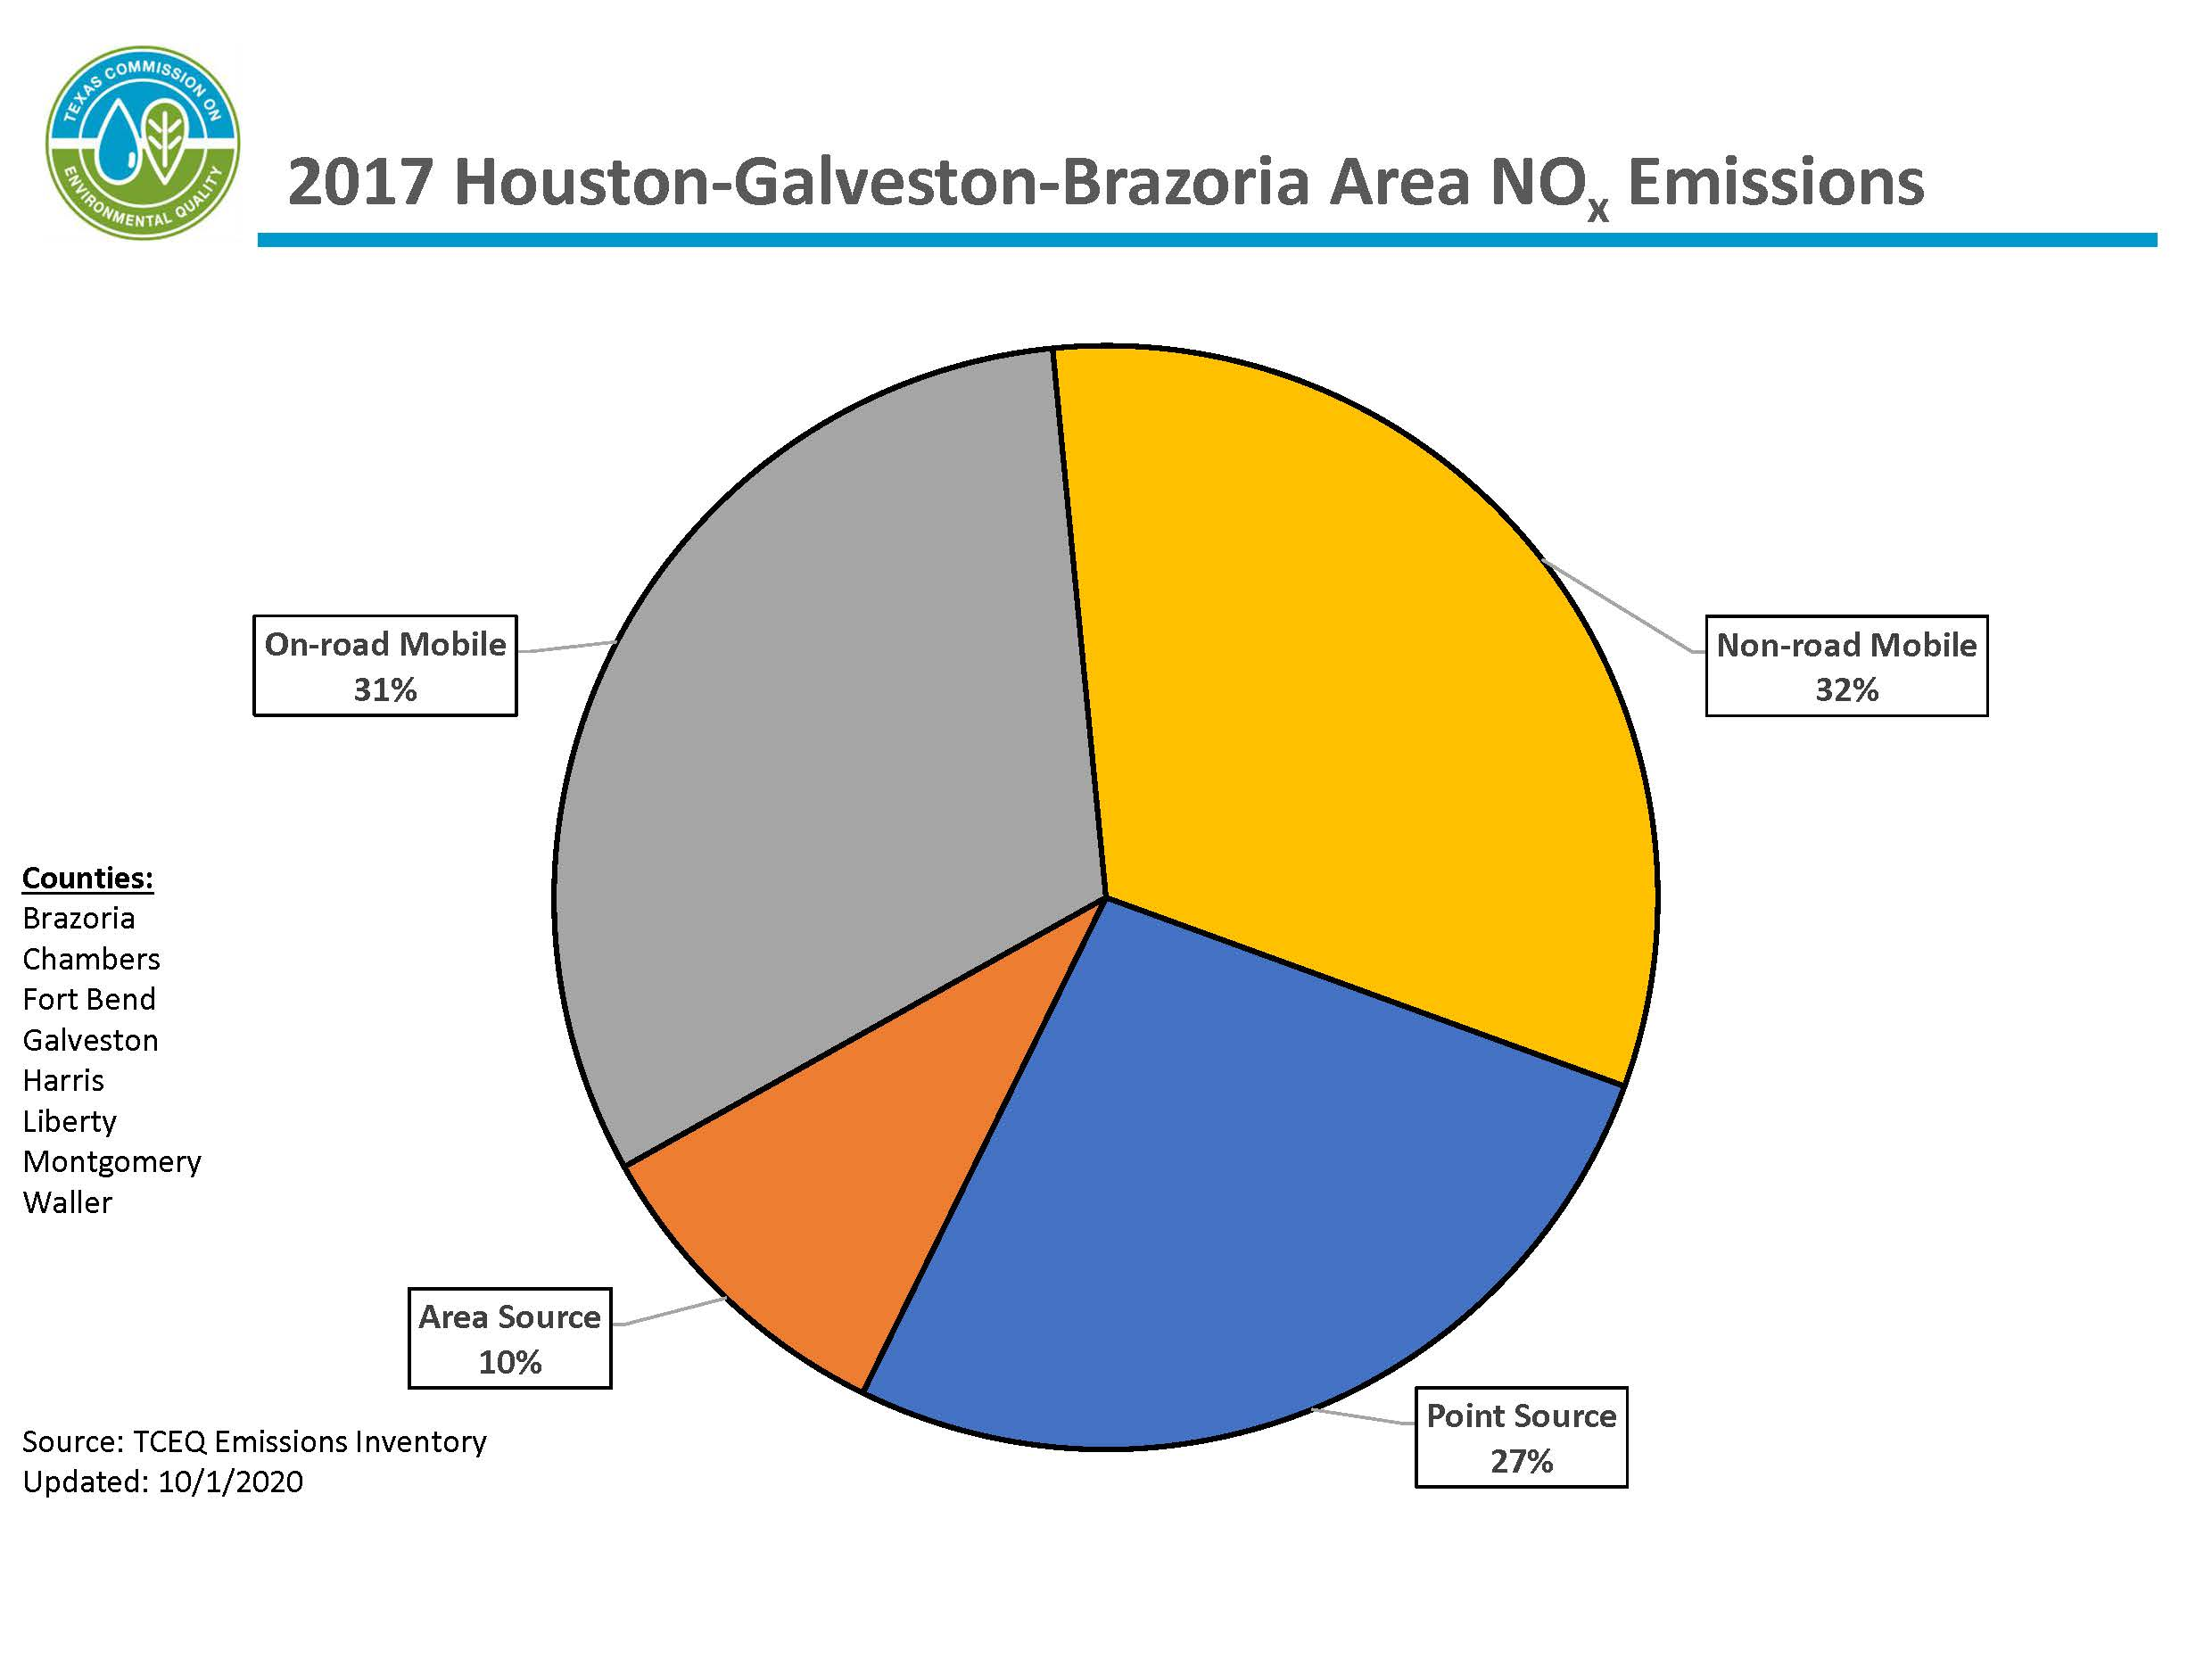 This chart represents calendar year 2017 nitrogen oxide emissions for the eight-county Houston-Galveston-Brazoria area. The HGB area includes Brazoria, Chambers, Fort Bend, Galveston, Harris, Liberty, Montgomery, and Waller counties. 62 percent of emissions are from mobile sources, 28 percent of emissions are from point sources, and 10 percent of emissions are from area sources.